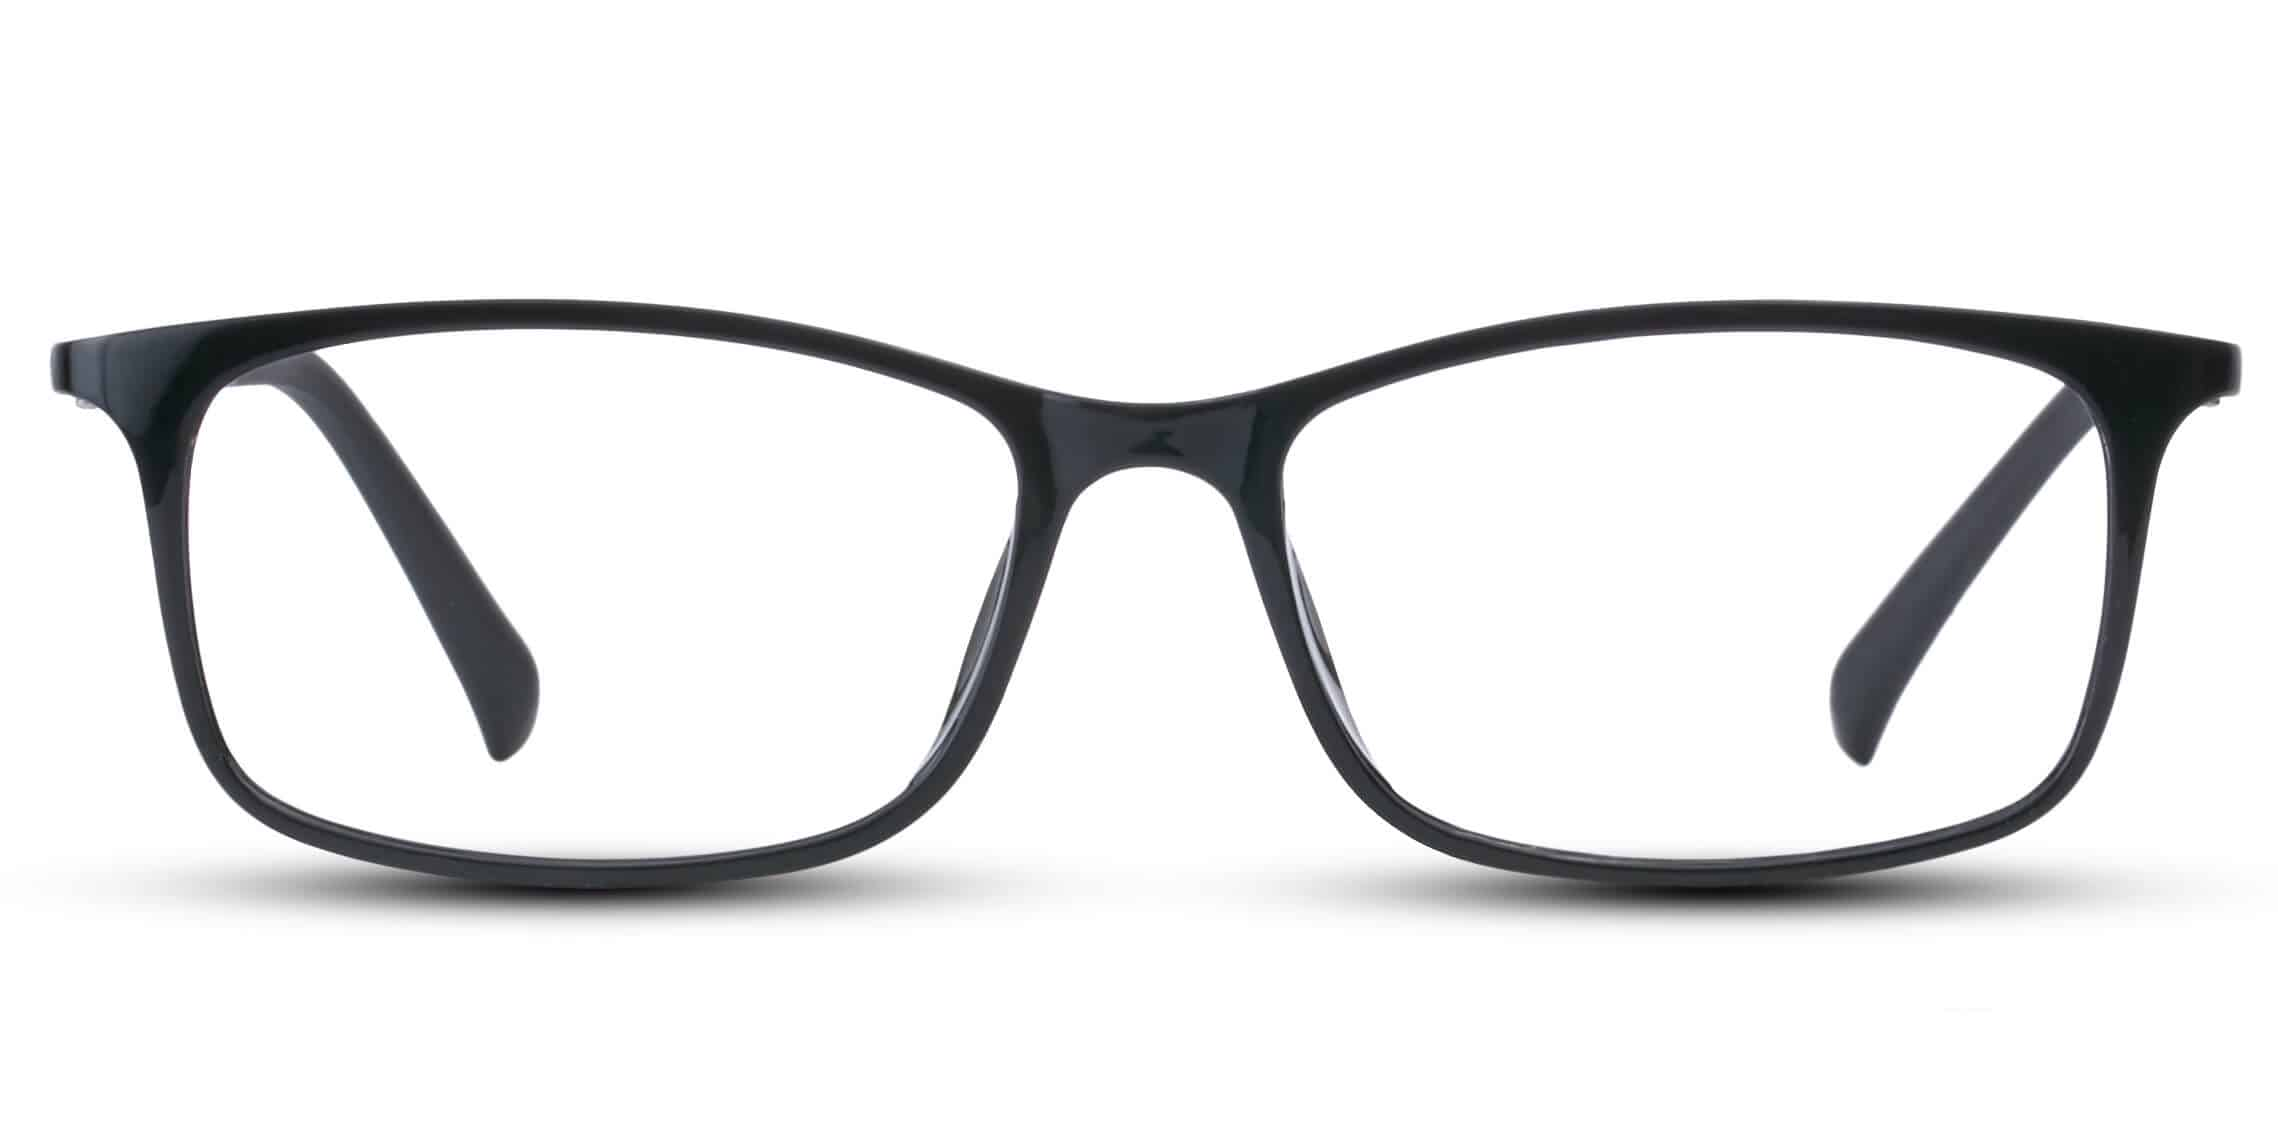 Black Plastic with blue temples